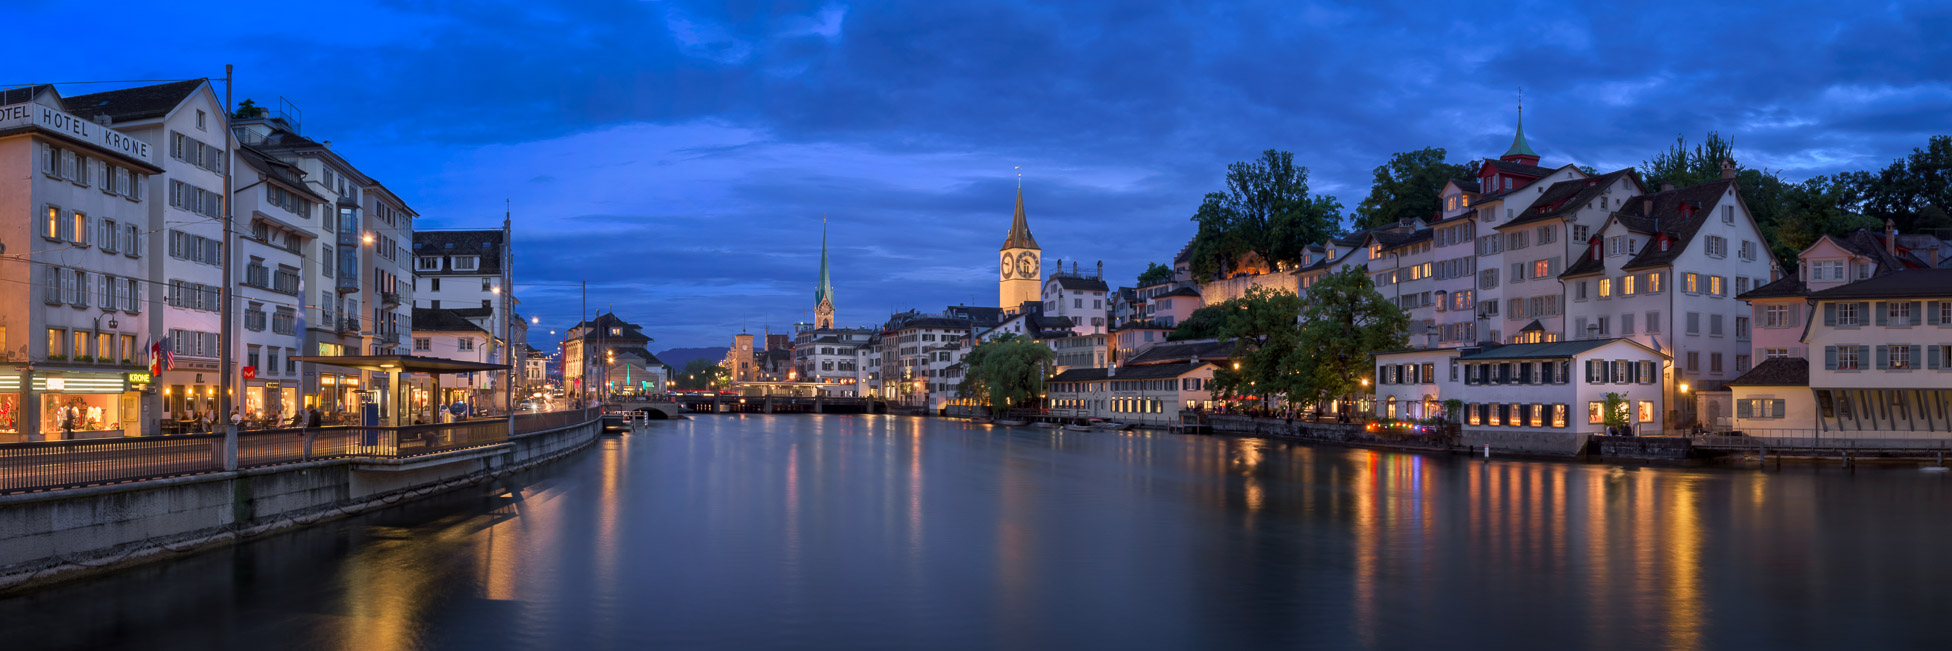 Zurich Skyline and Limmat River in the Evening, Zurich, Switzerland